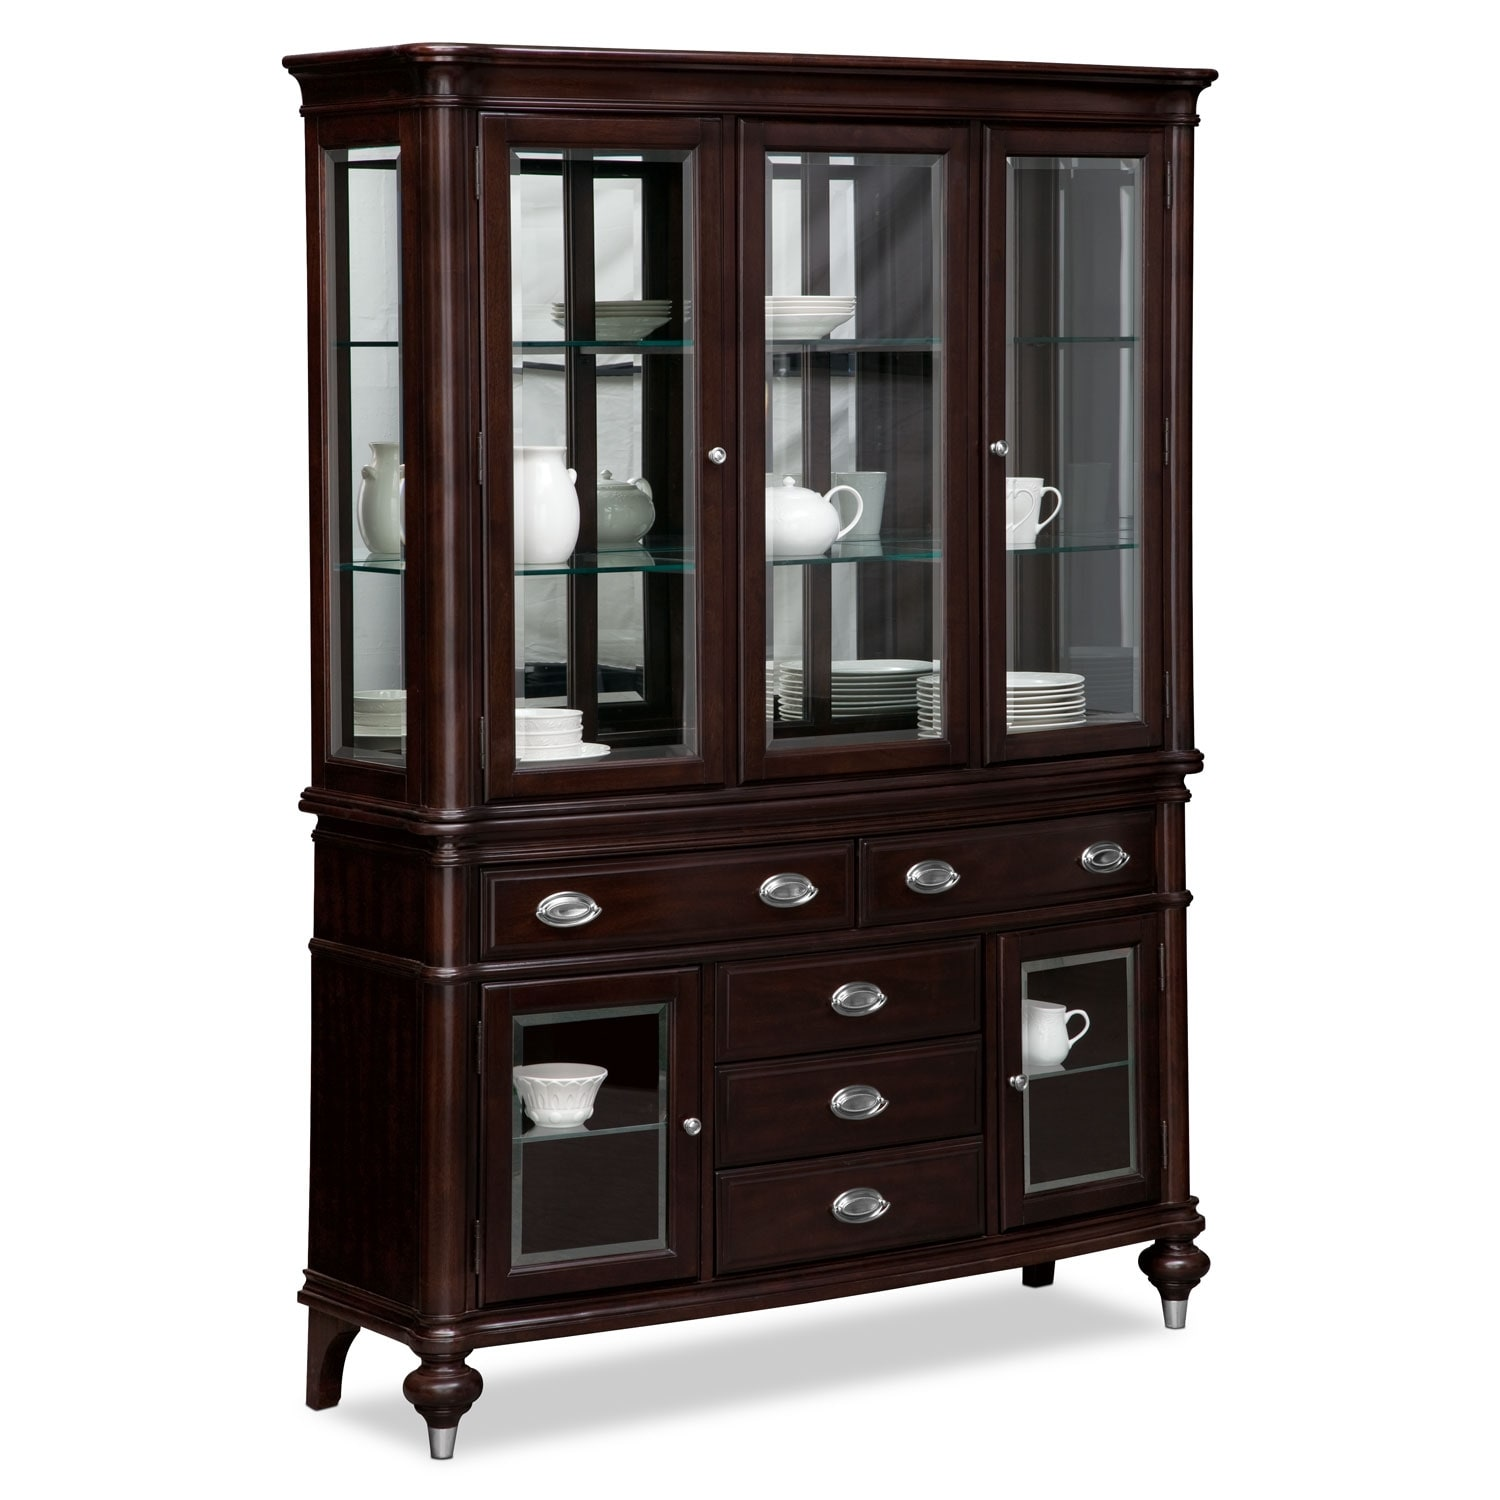 Dining Room Furniture - Esquire Buffet and Hutch